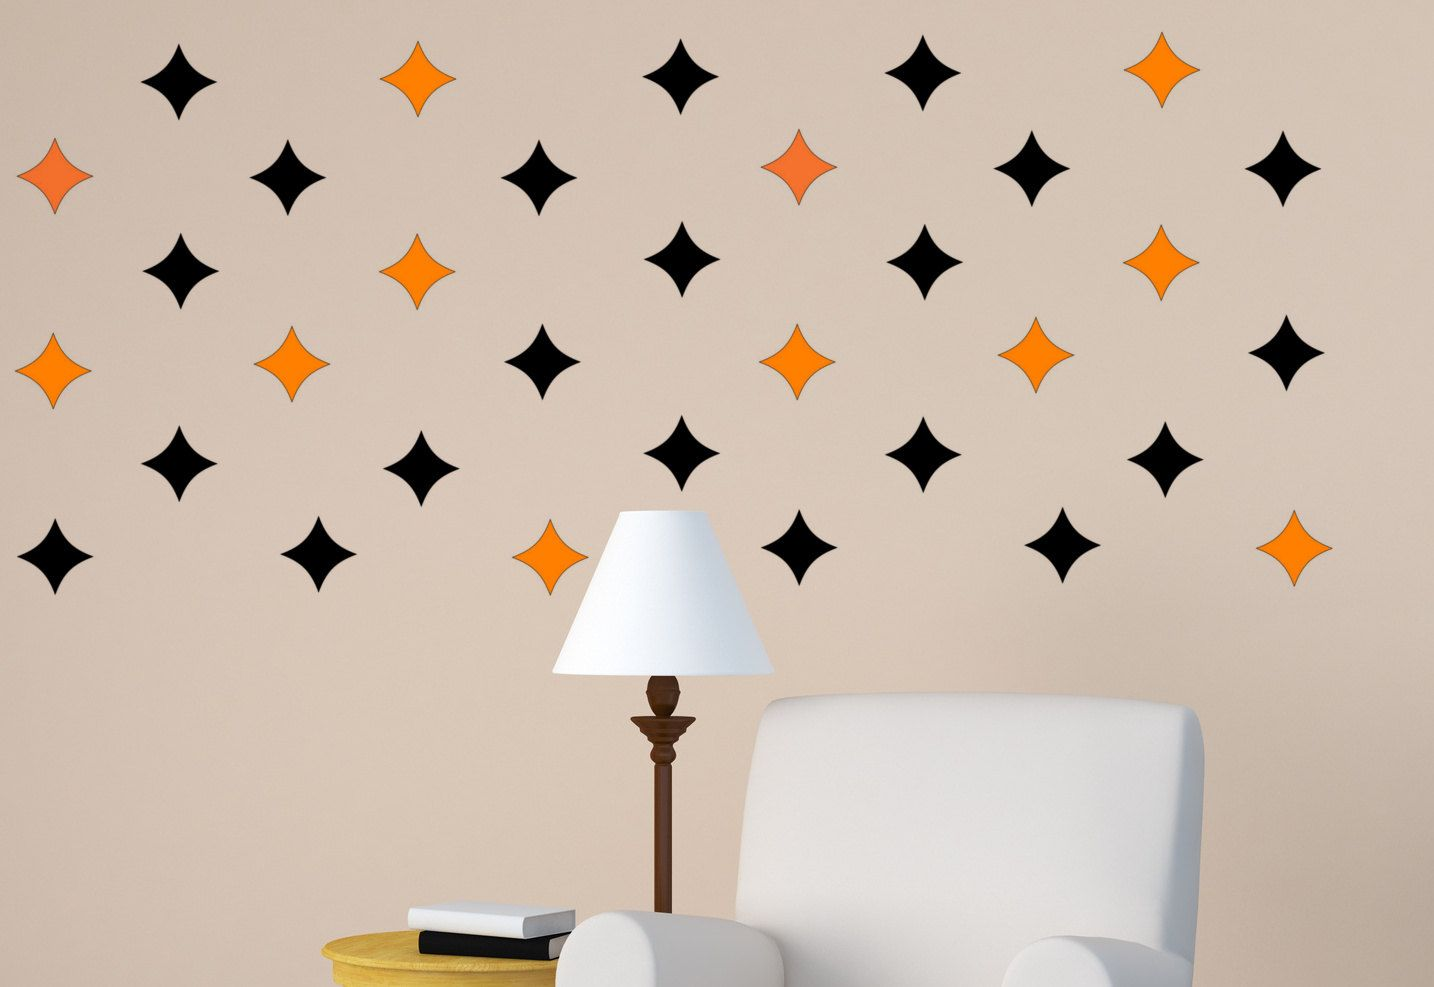 Star wall decal set of 50 diamond wall stickers home office & Star wall decal set of 50 diamond wall stickers home office ...